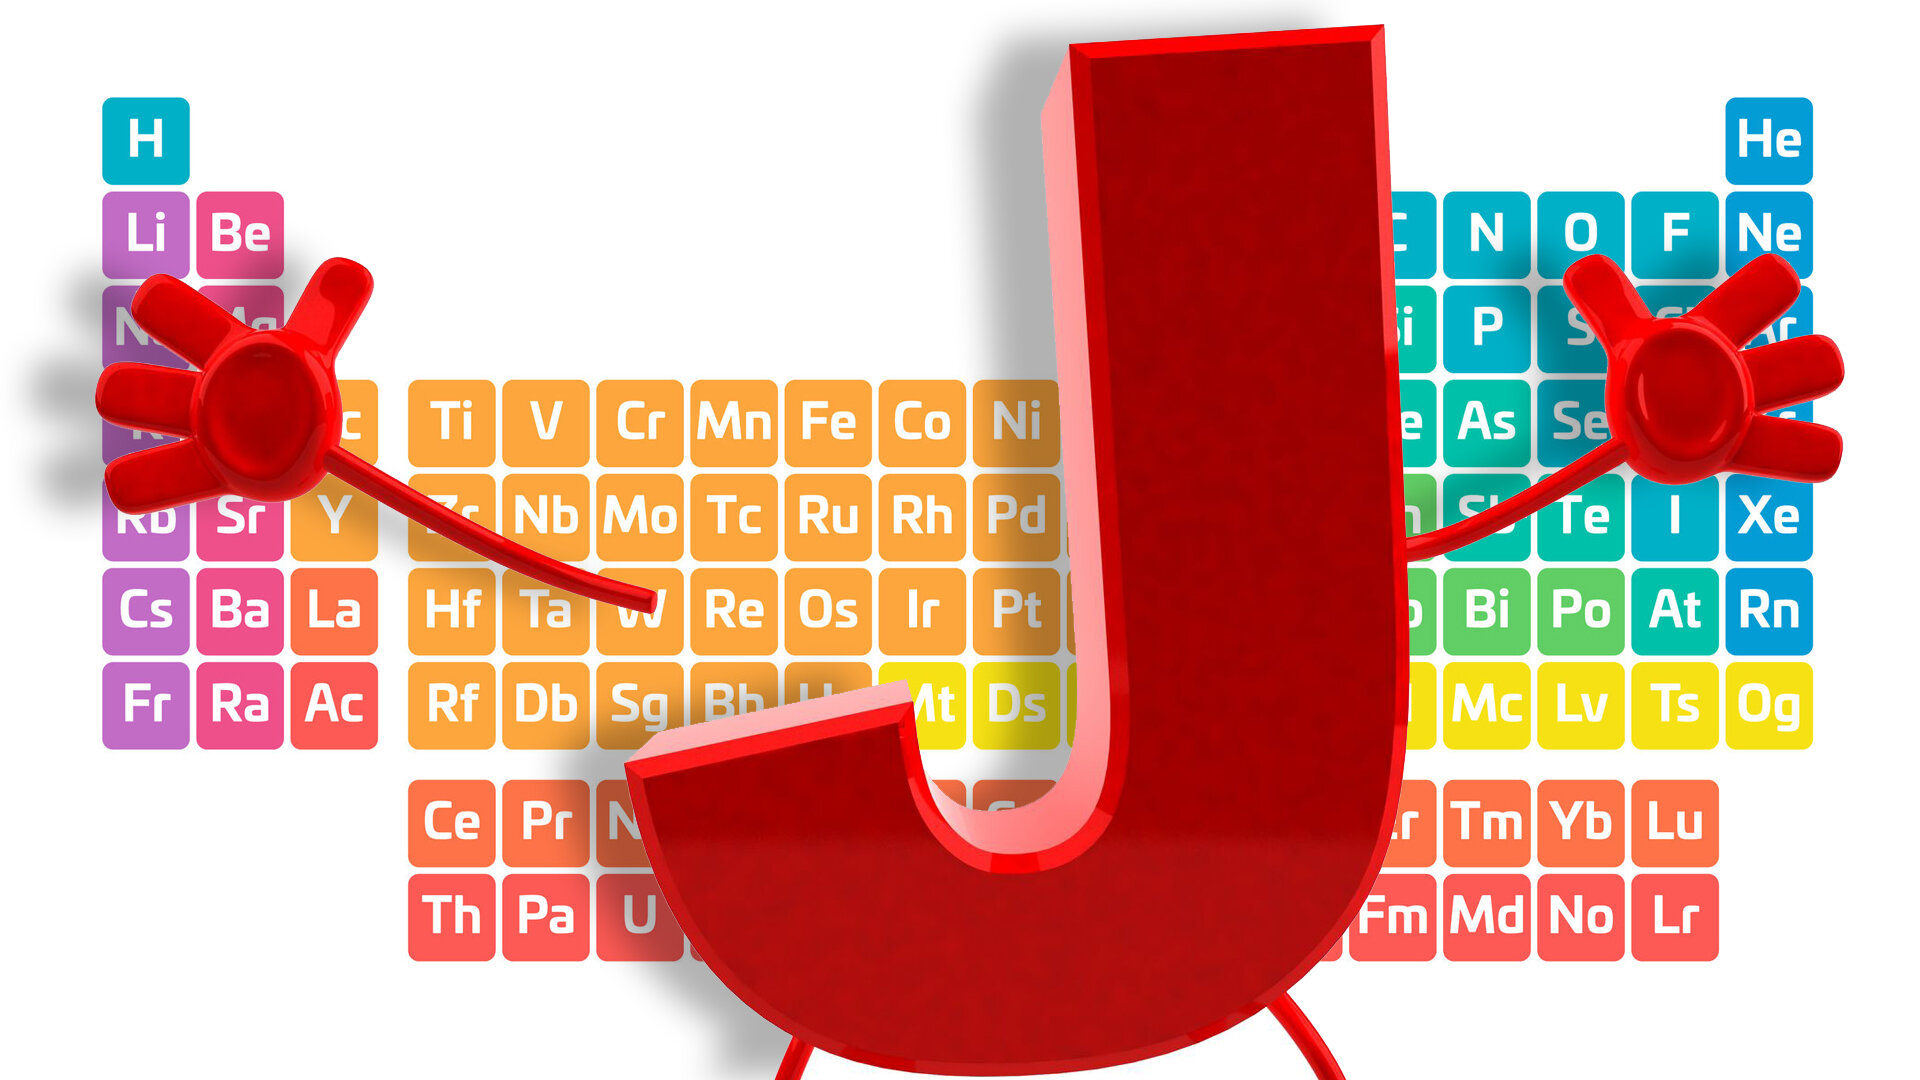 68: The only letter missing from the periodic table is J.  https://www.youtube.com/watch?v=rz4Dd1I_fX0